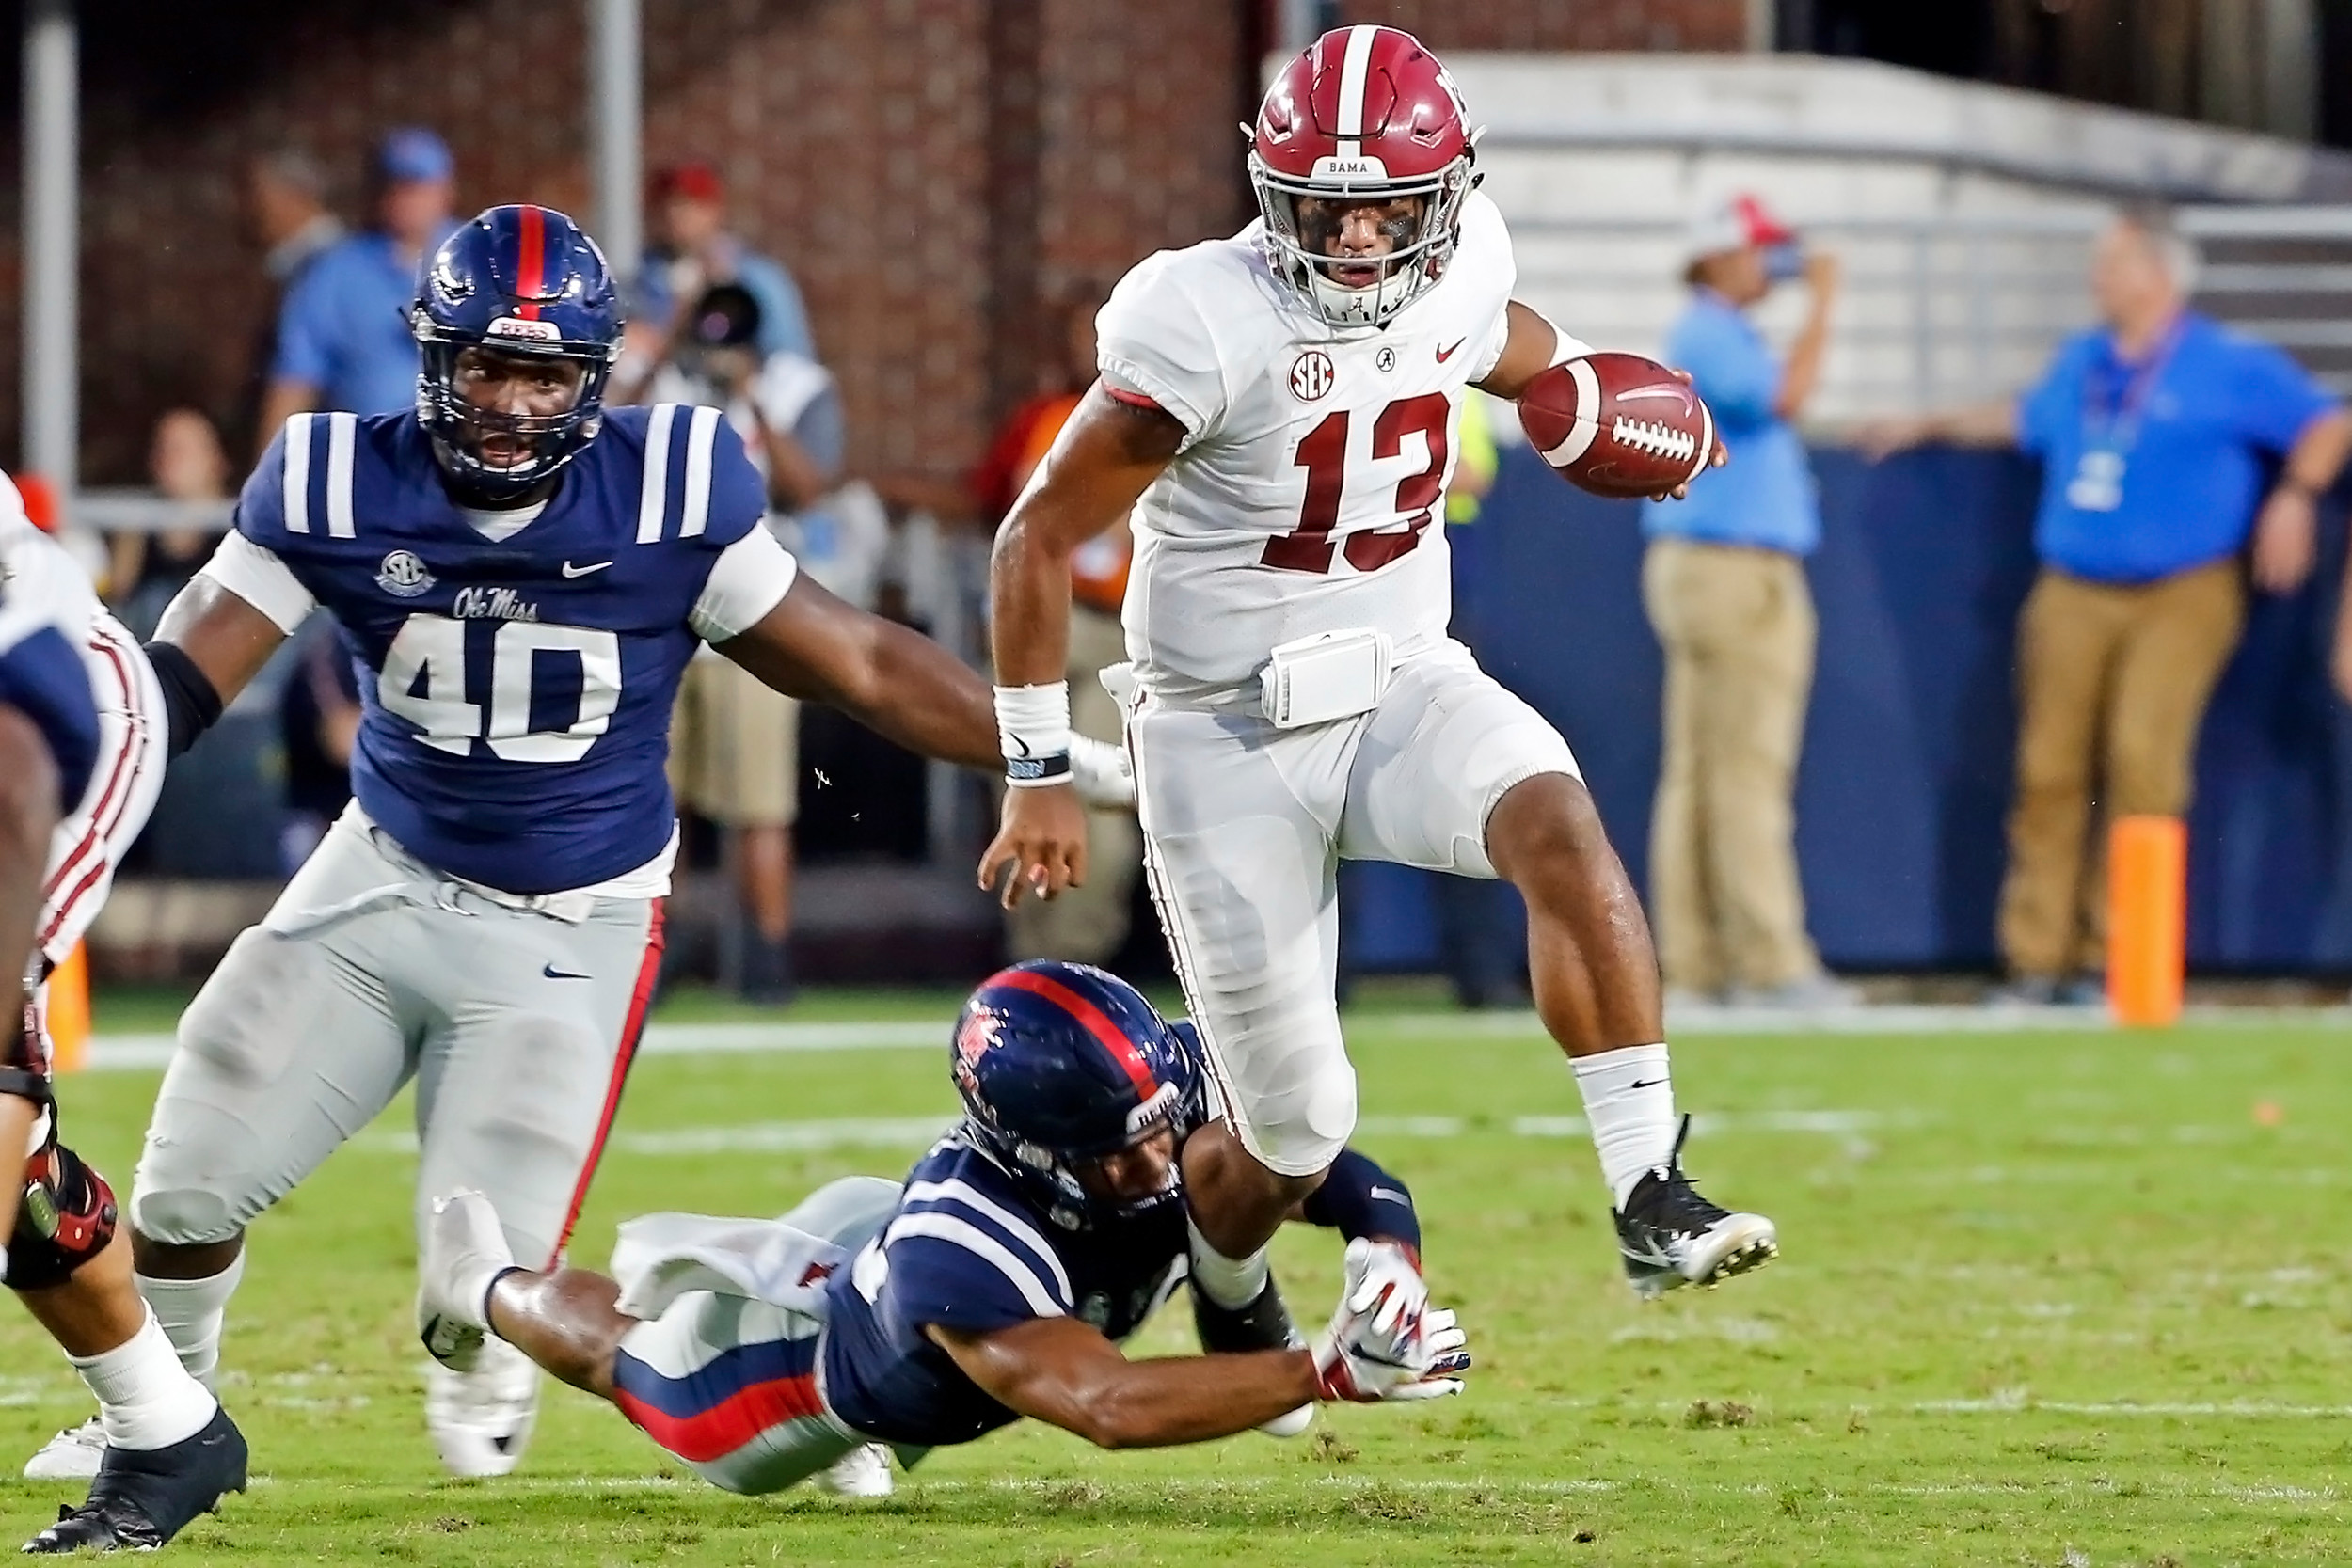 Alabama Crimson Tide quarterback Tua Tagovailoa (13) rushes for a first down during the game between the University of Alabama and Ole Miss at Vaught-Hemingway Stadium. Jason Clark / Daily Mountain Eagle